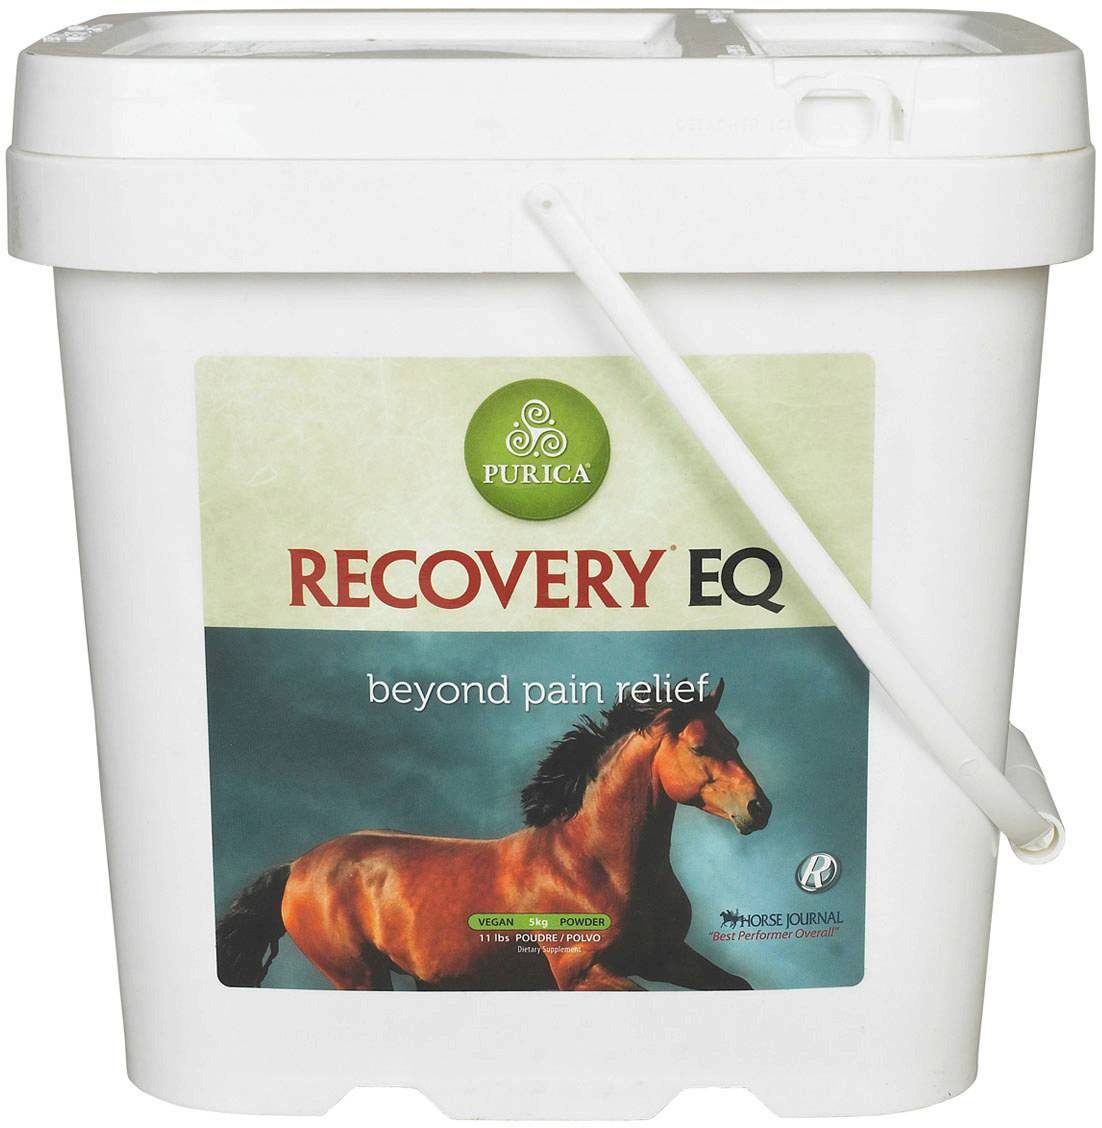 Recovery Eq